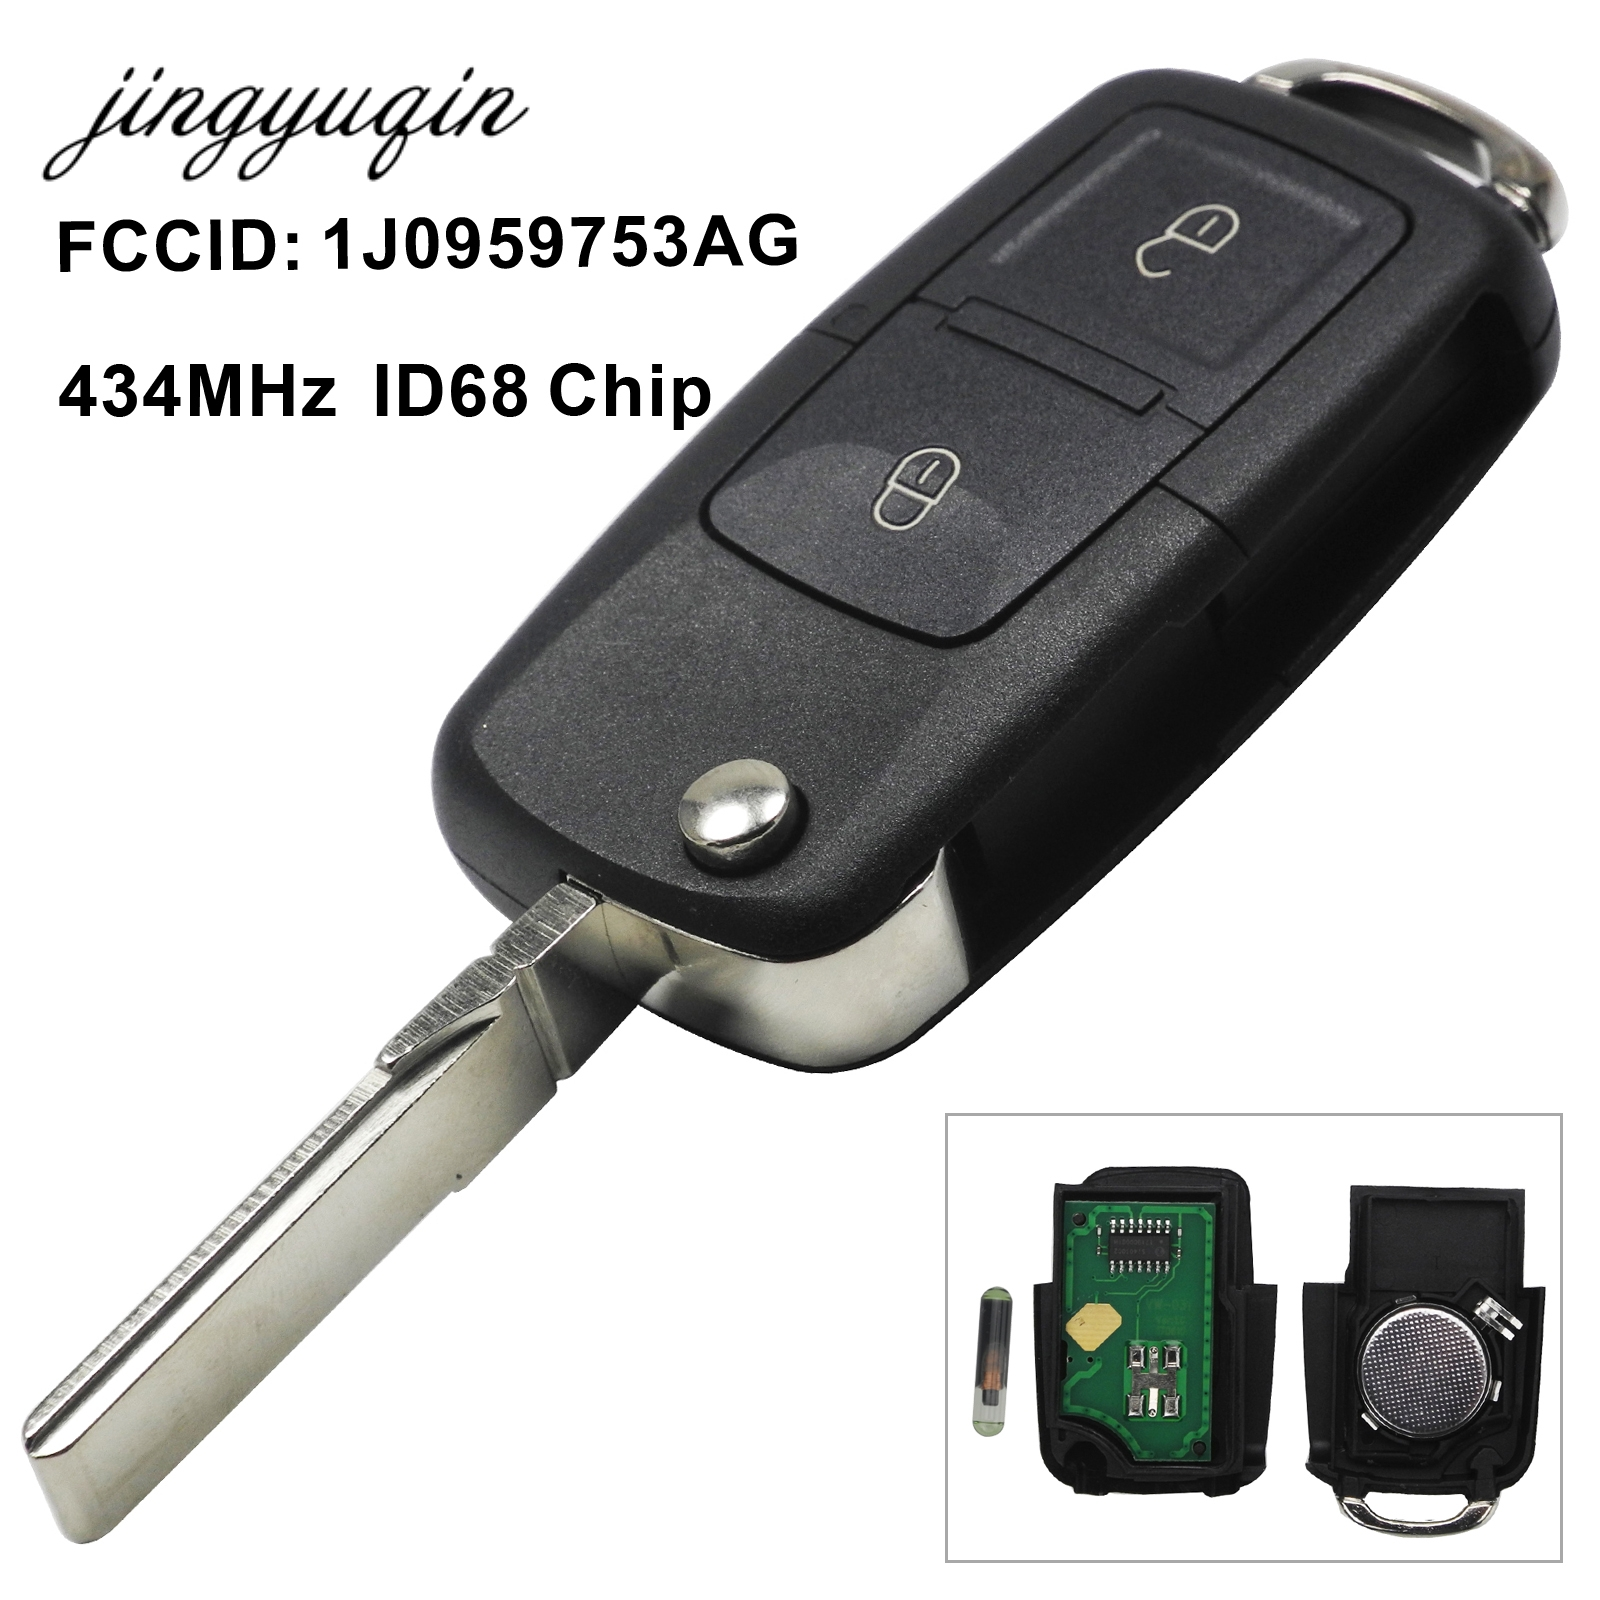 Jingyuqin 2/3/4 Button Flip Remote Key Fob 434MHz ID48 Chip For VW Beetle Bora Golf Passat Polo Transporter T5 1J0 959 753 AG(China)